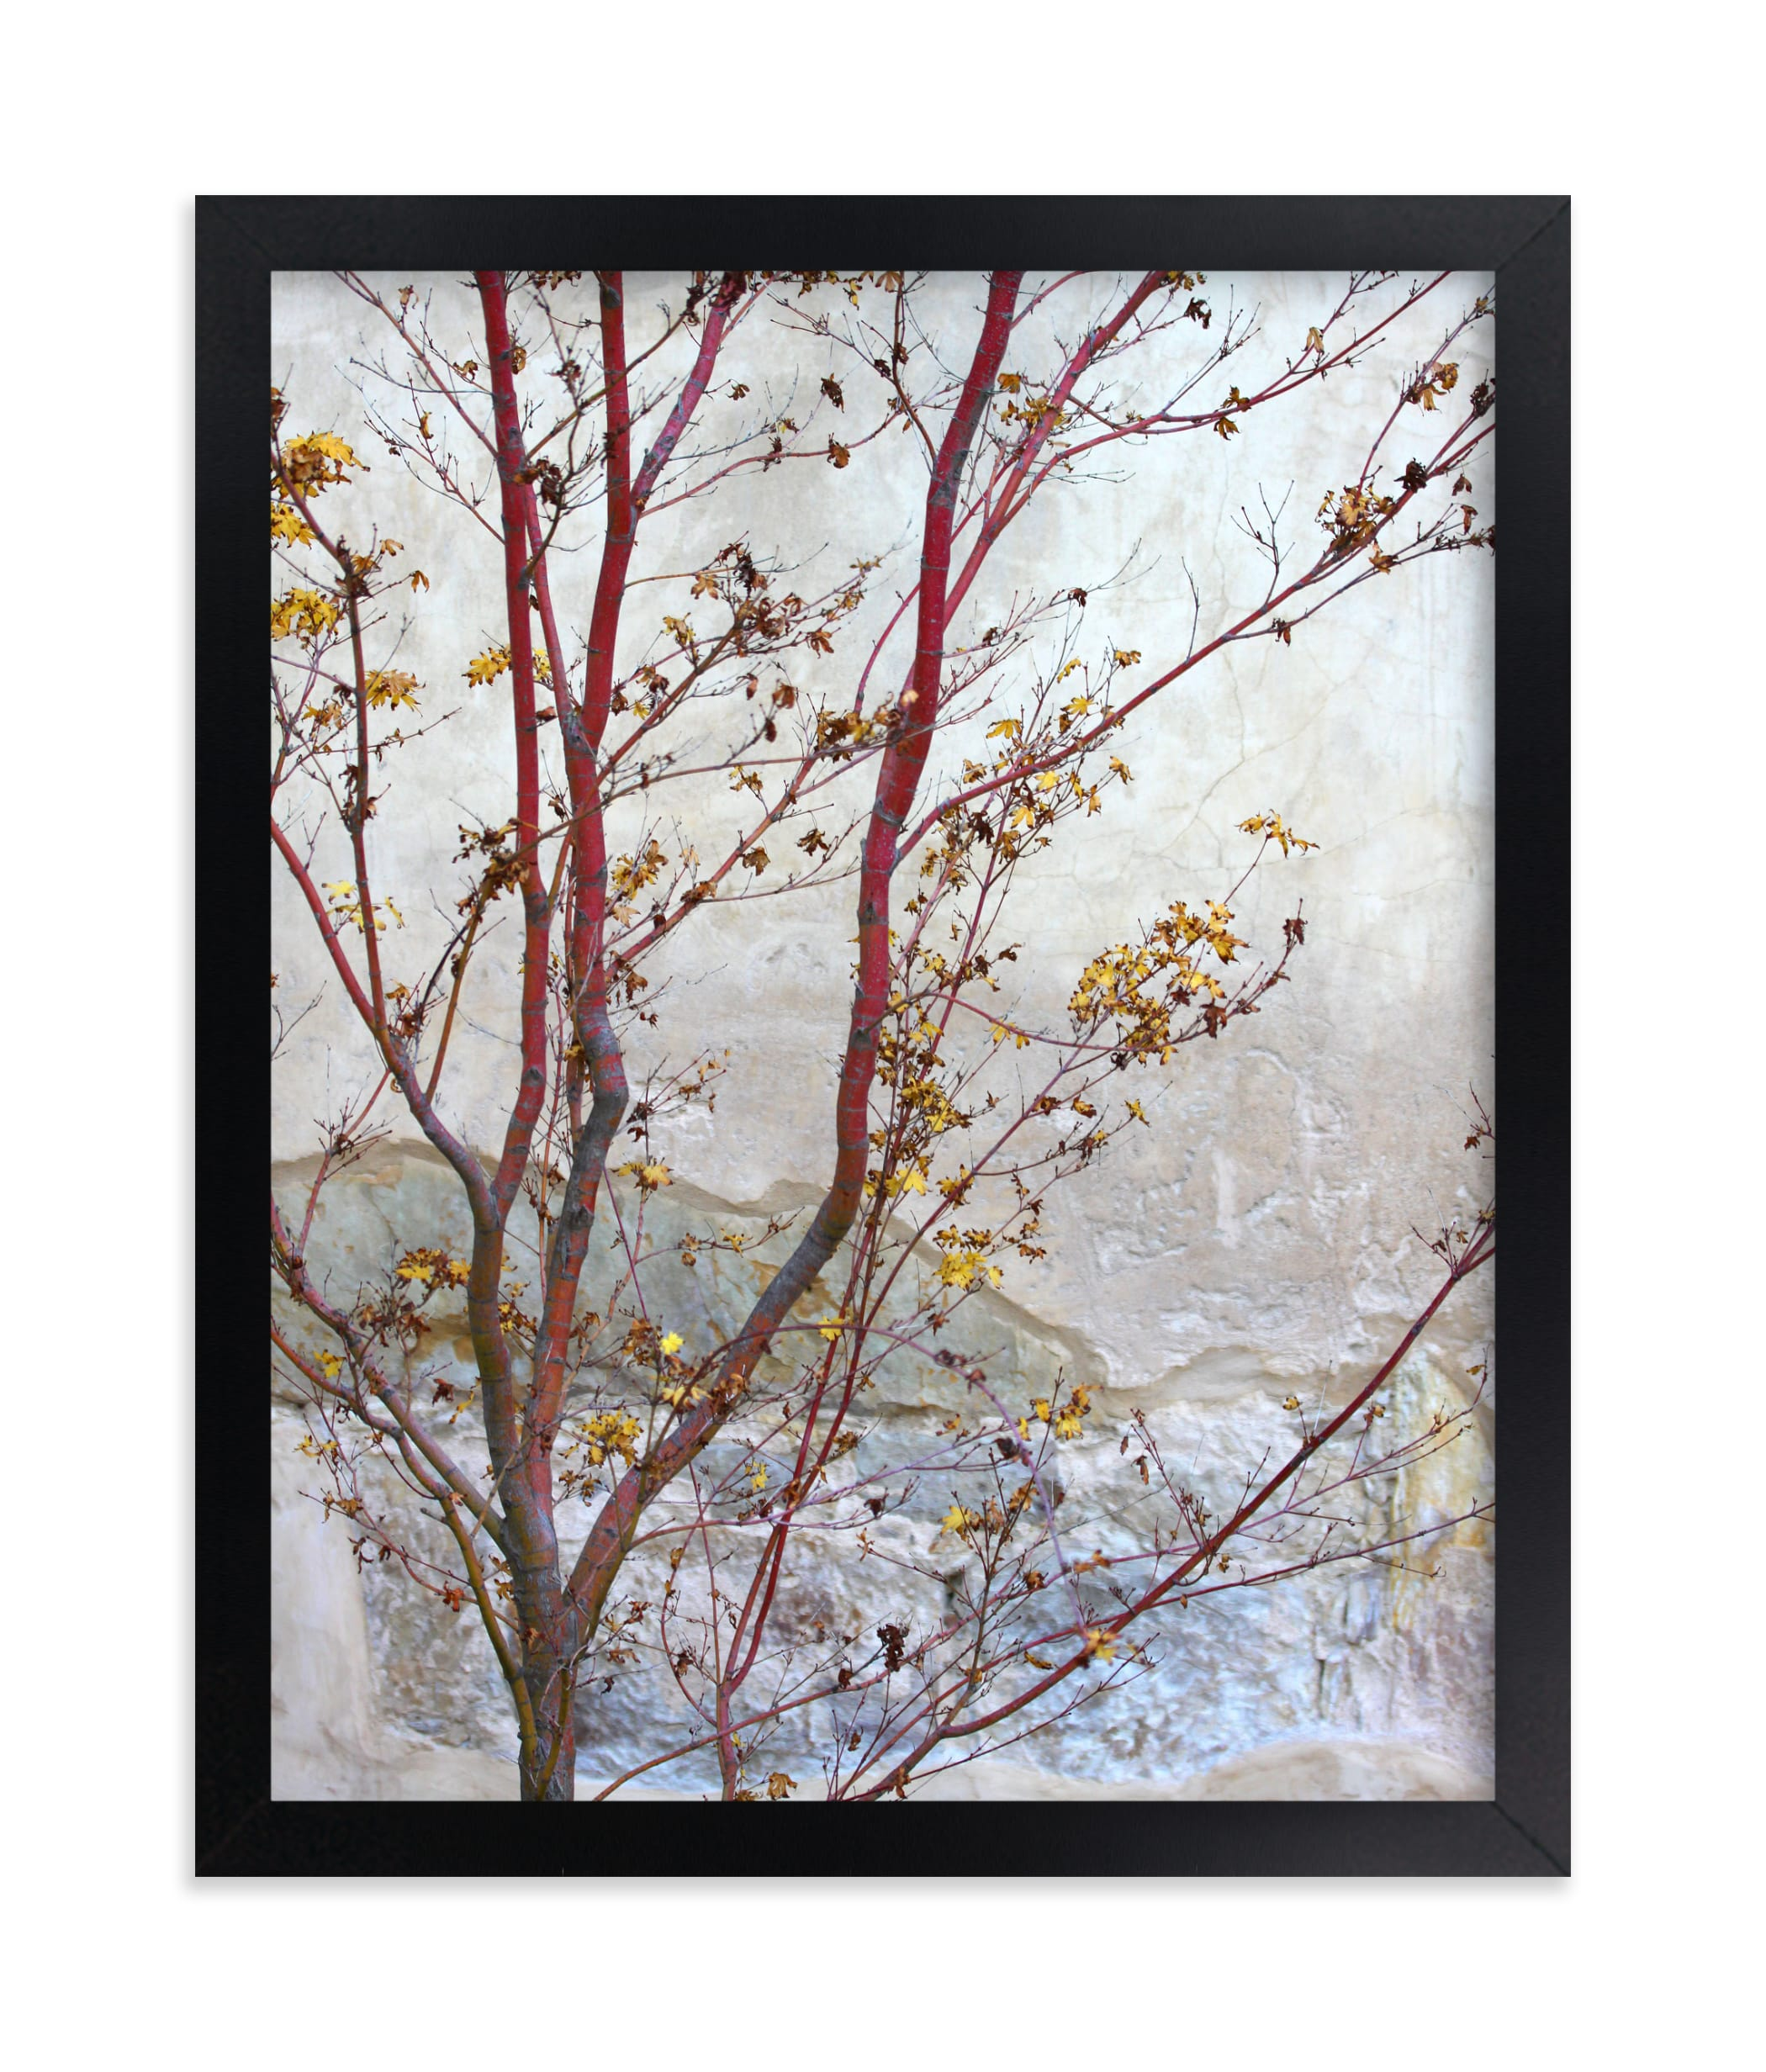 """Courtyard Maple"" - Limited Edition Art Print by Becky Nimoy in beautiful frame options and a variety of sizes."